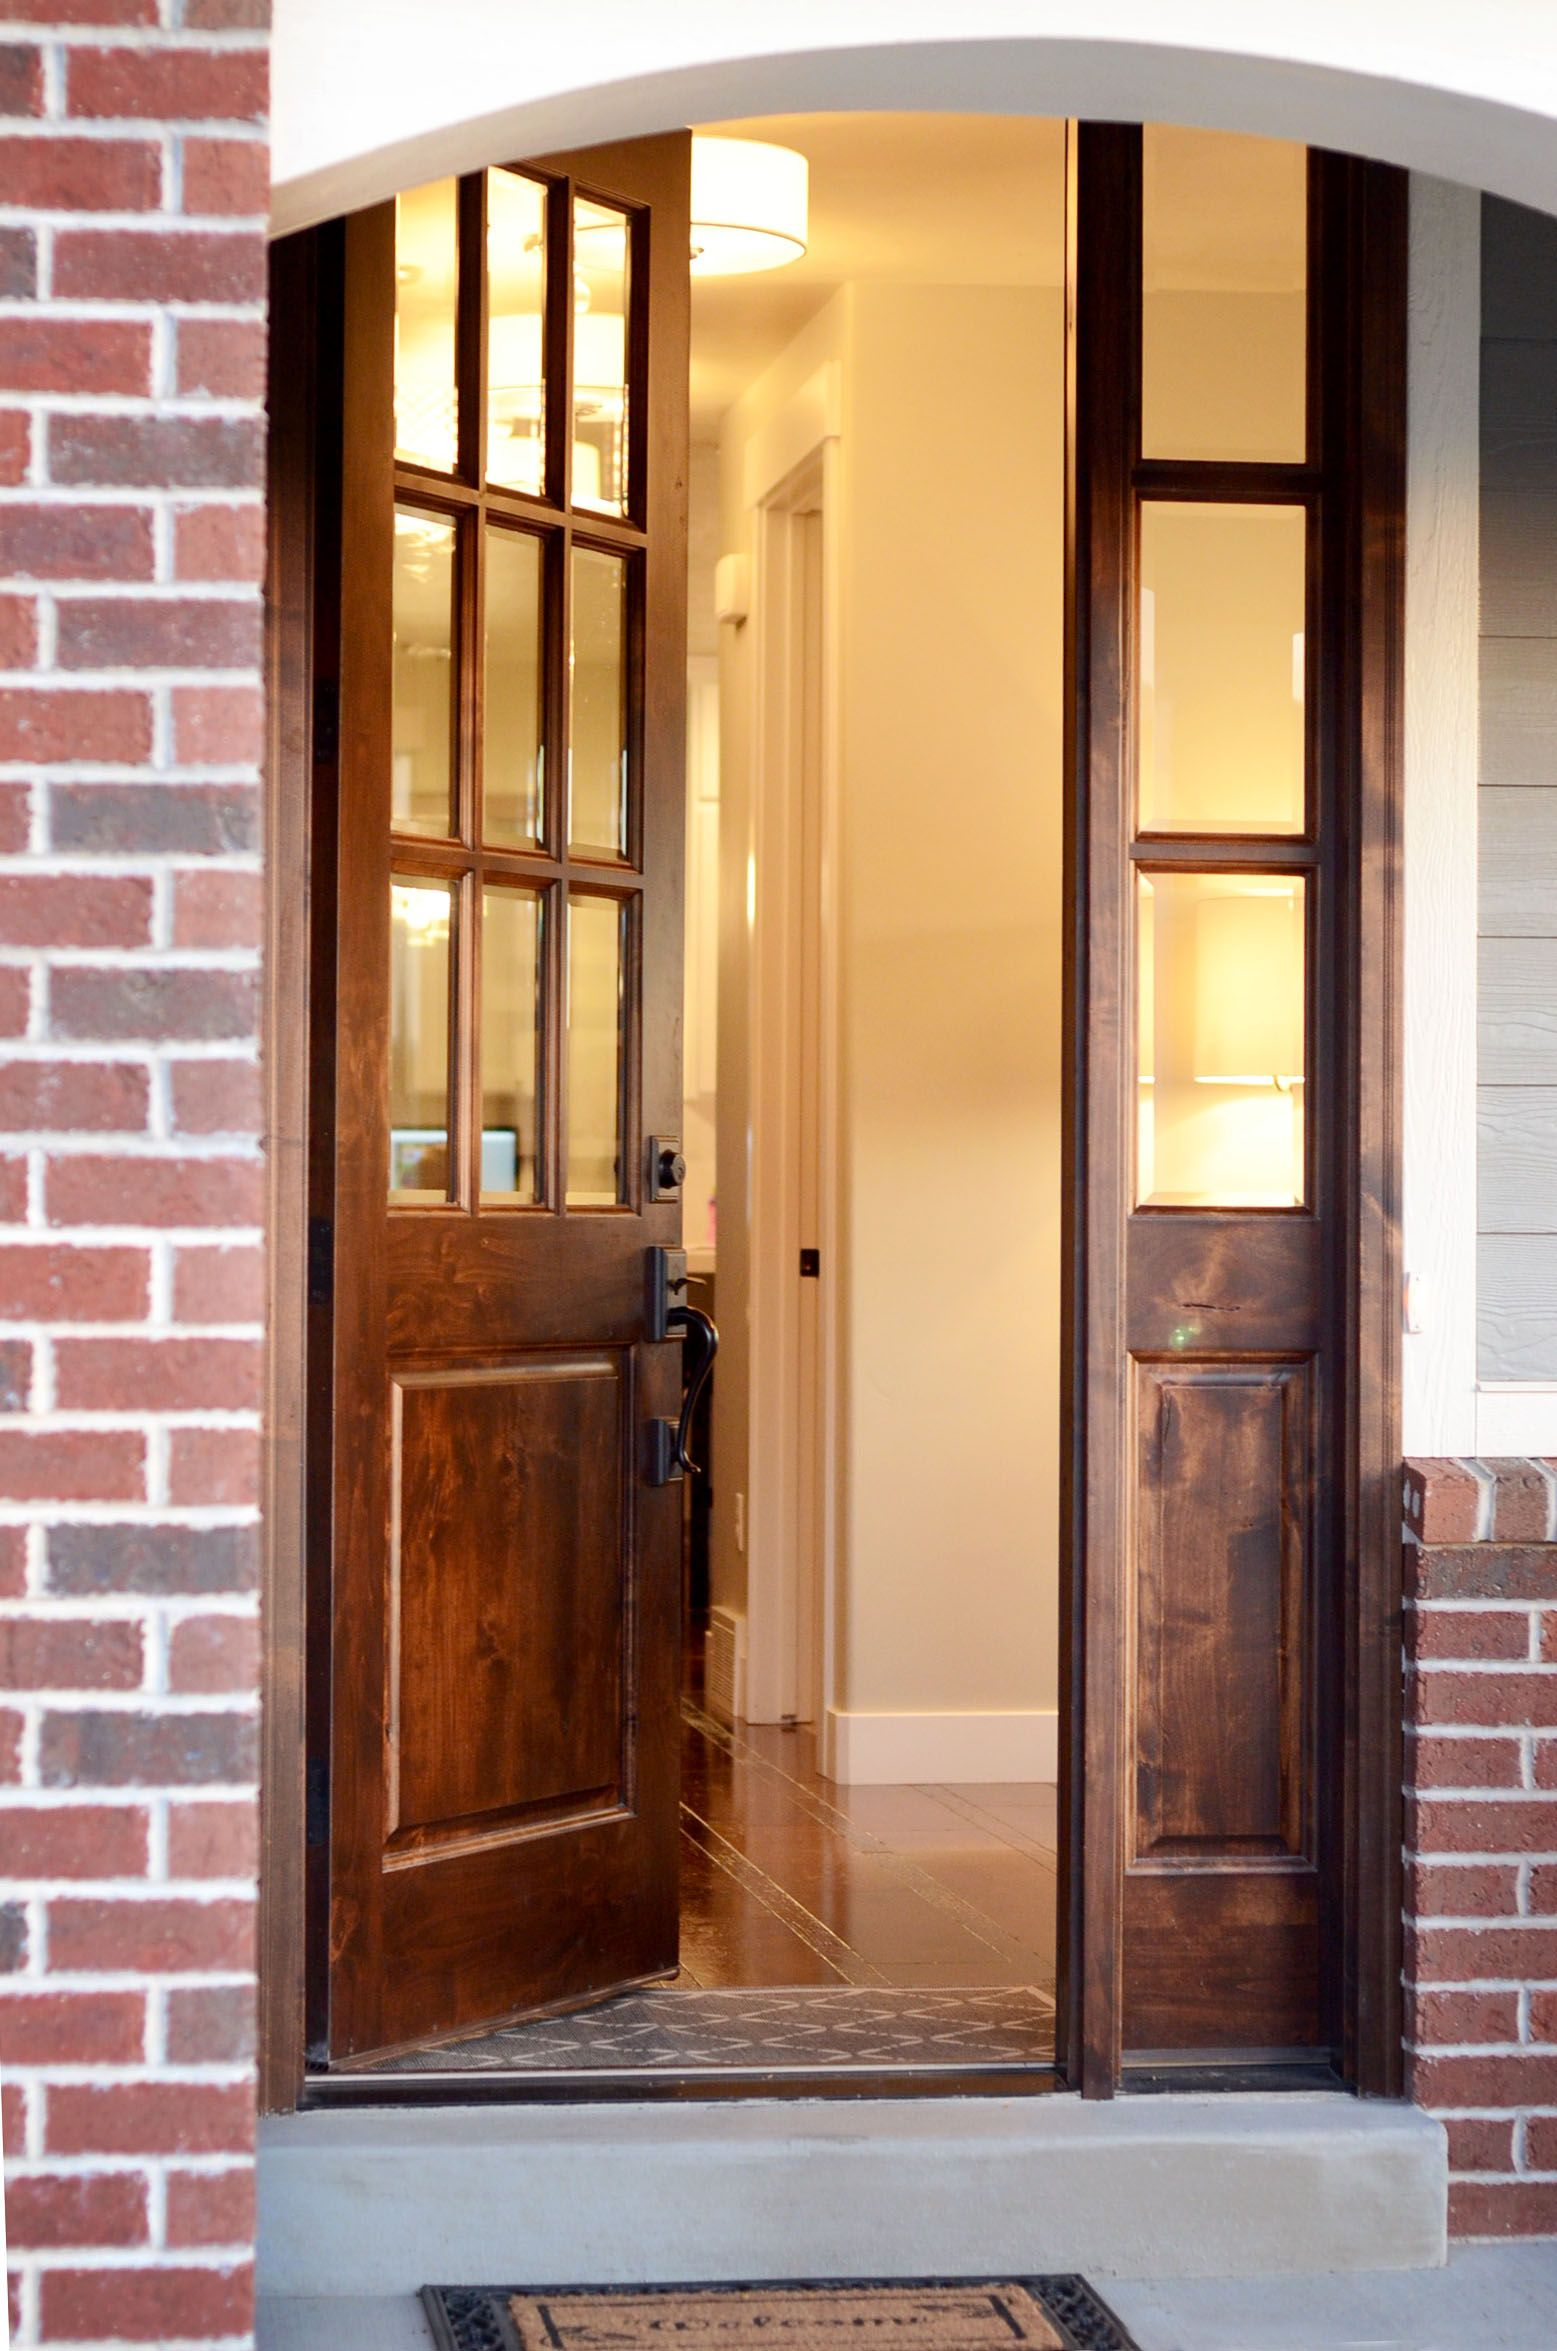 Wooden French Doors Add Class To This Brick Home S Entryway Wood Front Doors French Doors Exterior Garage Door Colors